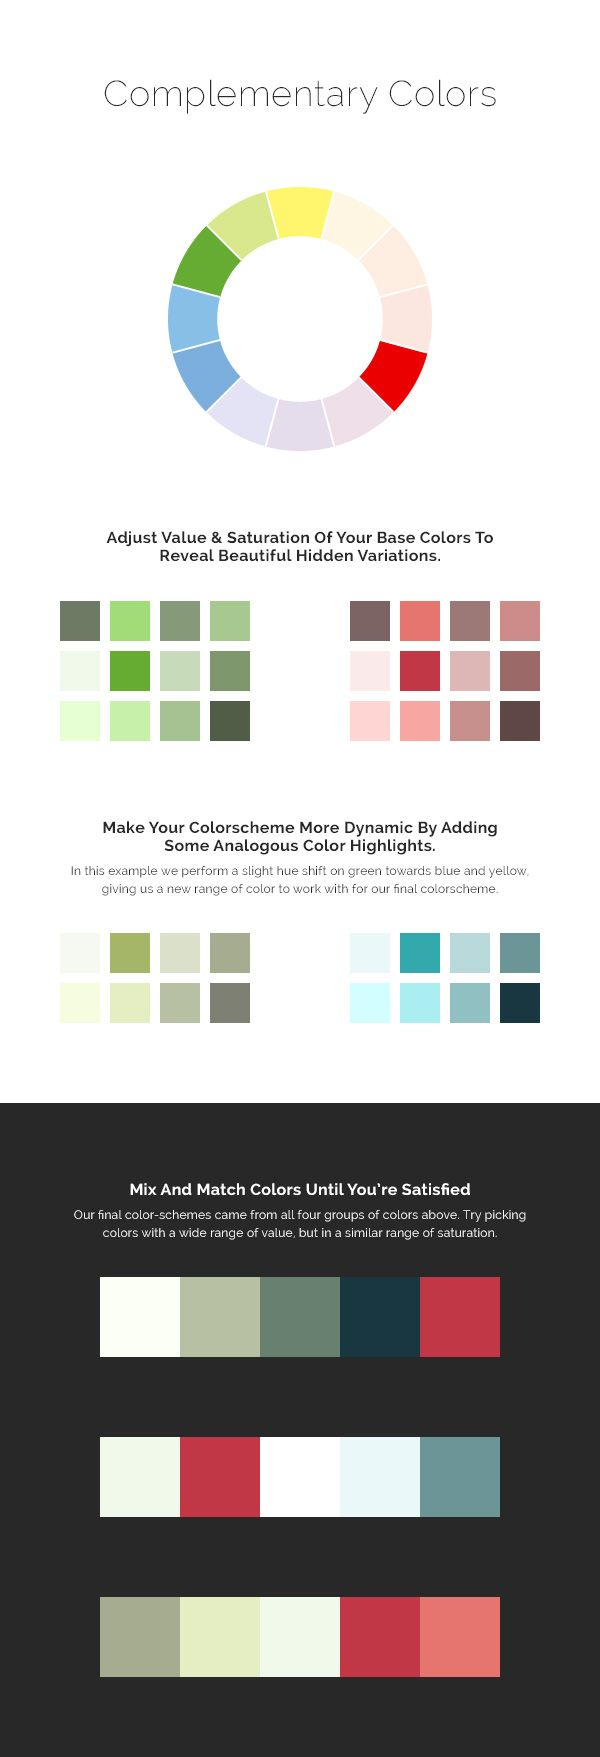 Color harmony online - Excellent Color Tutorial For Web Design Four Quick Tips For Improving Color Harmony In